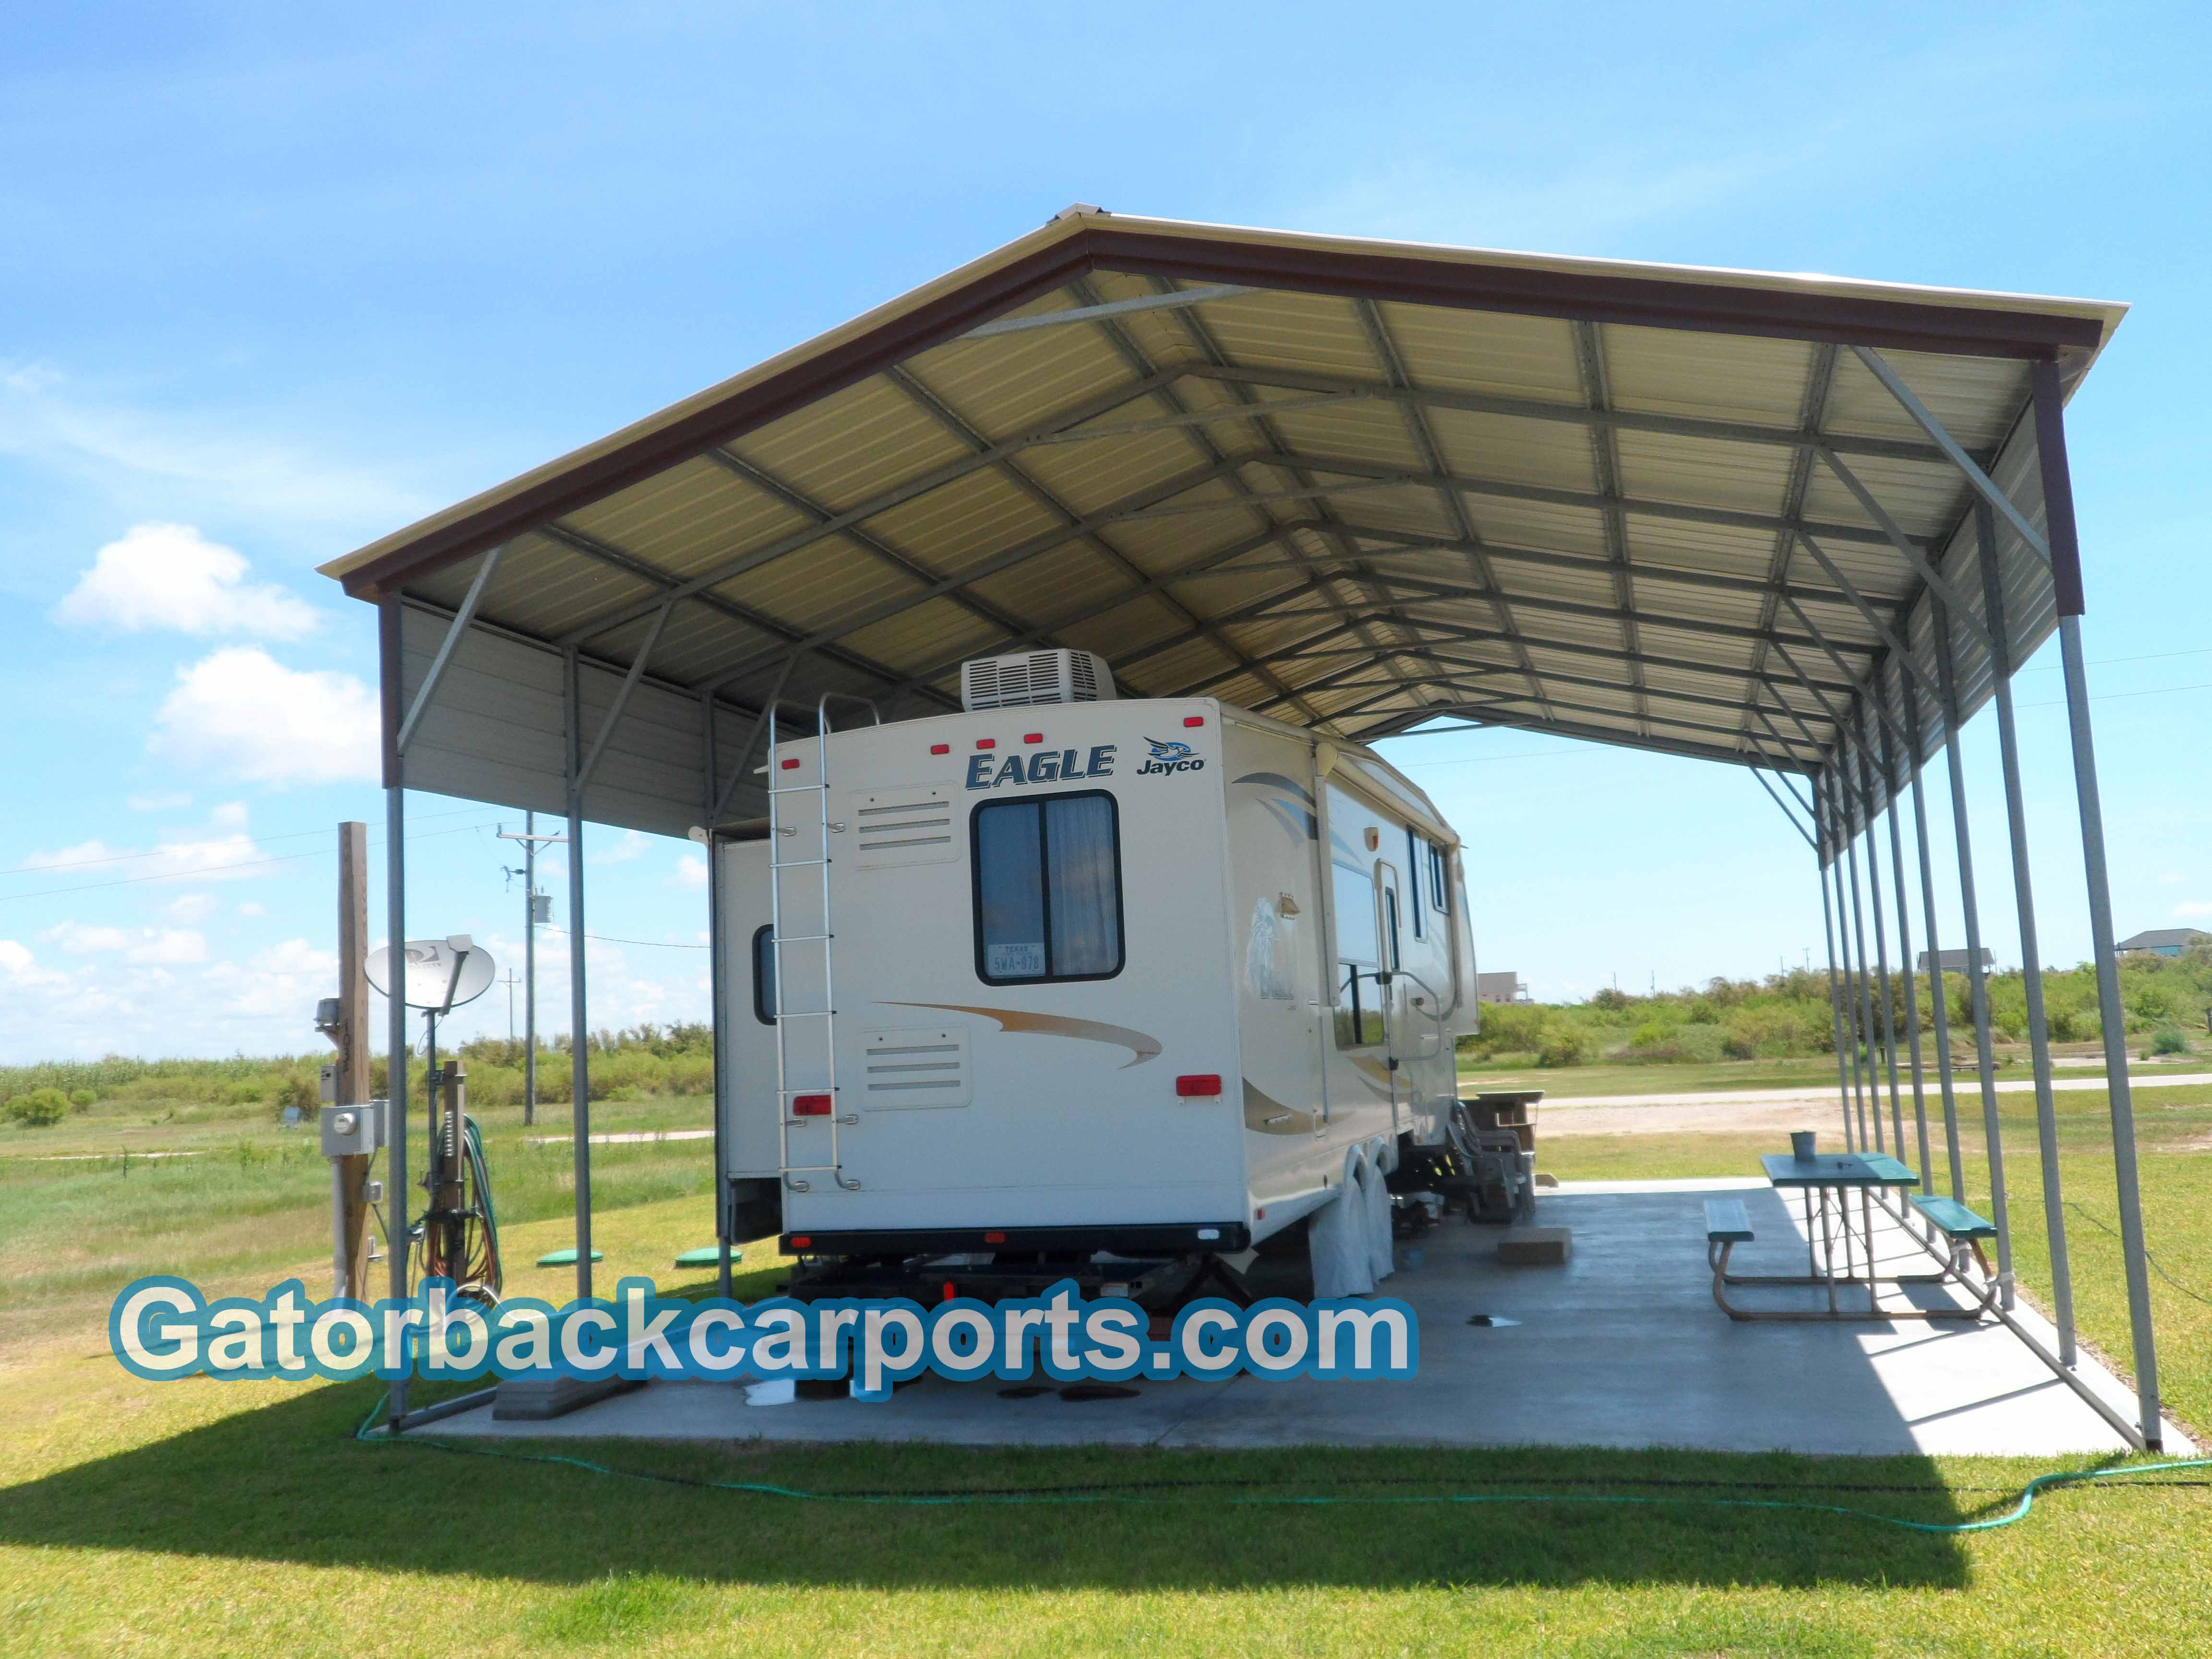 Rv Metal Carport Panels : Rv carports covers garages gatorback